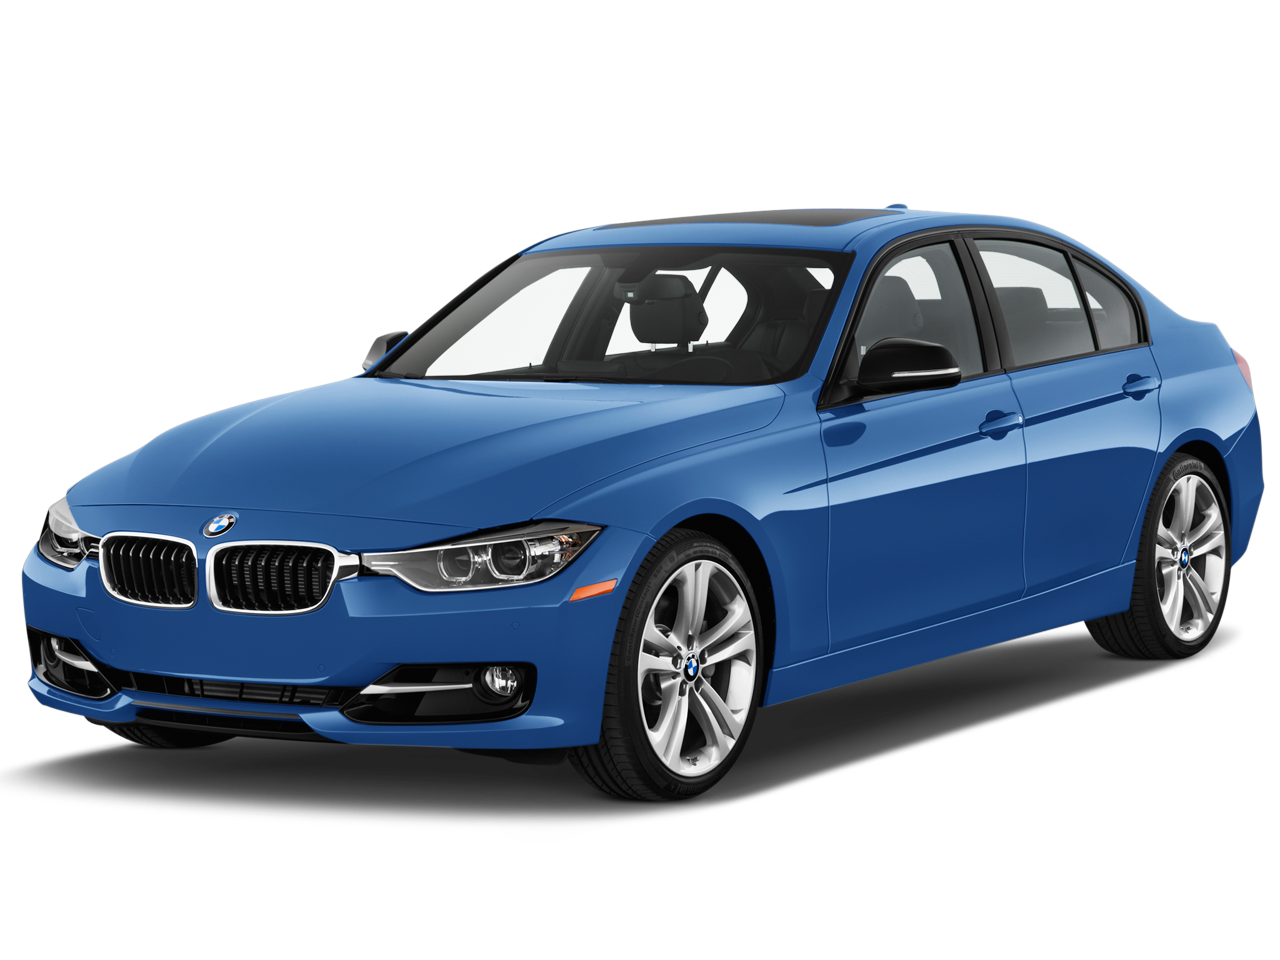 BMW clipart Image Png FreeClipart Png Png